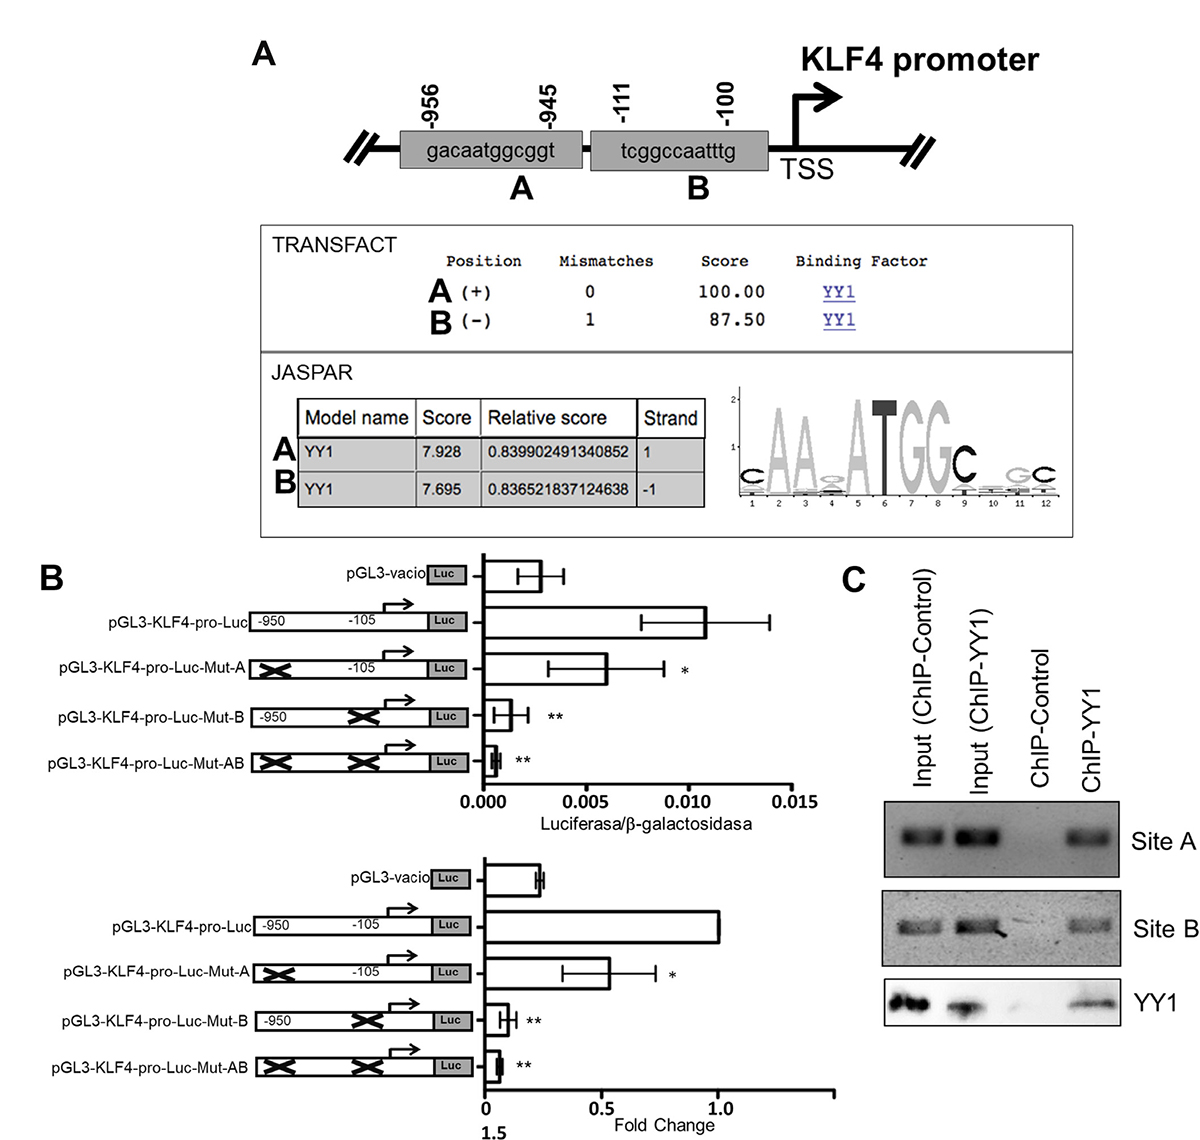 Bioinformatics analysis of the sequence of the promoter region of the KLF4 gene.